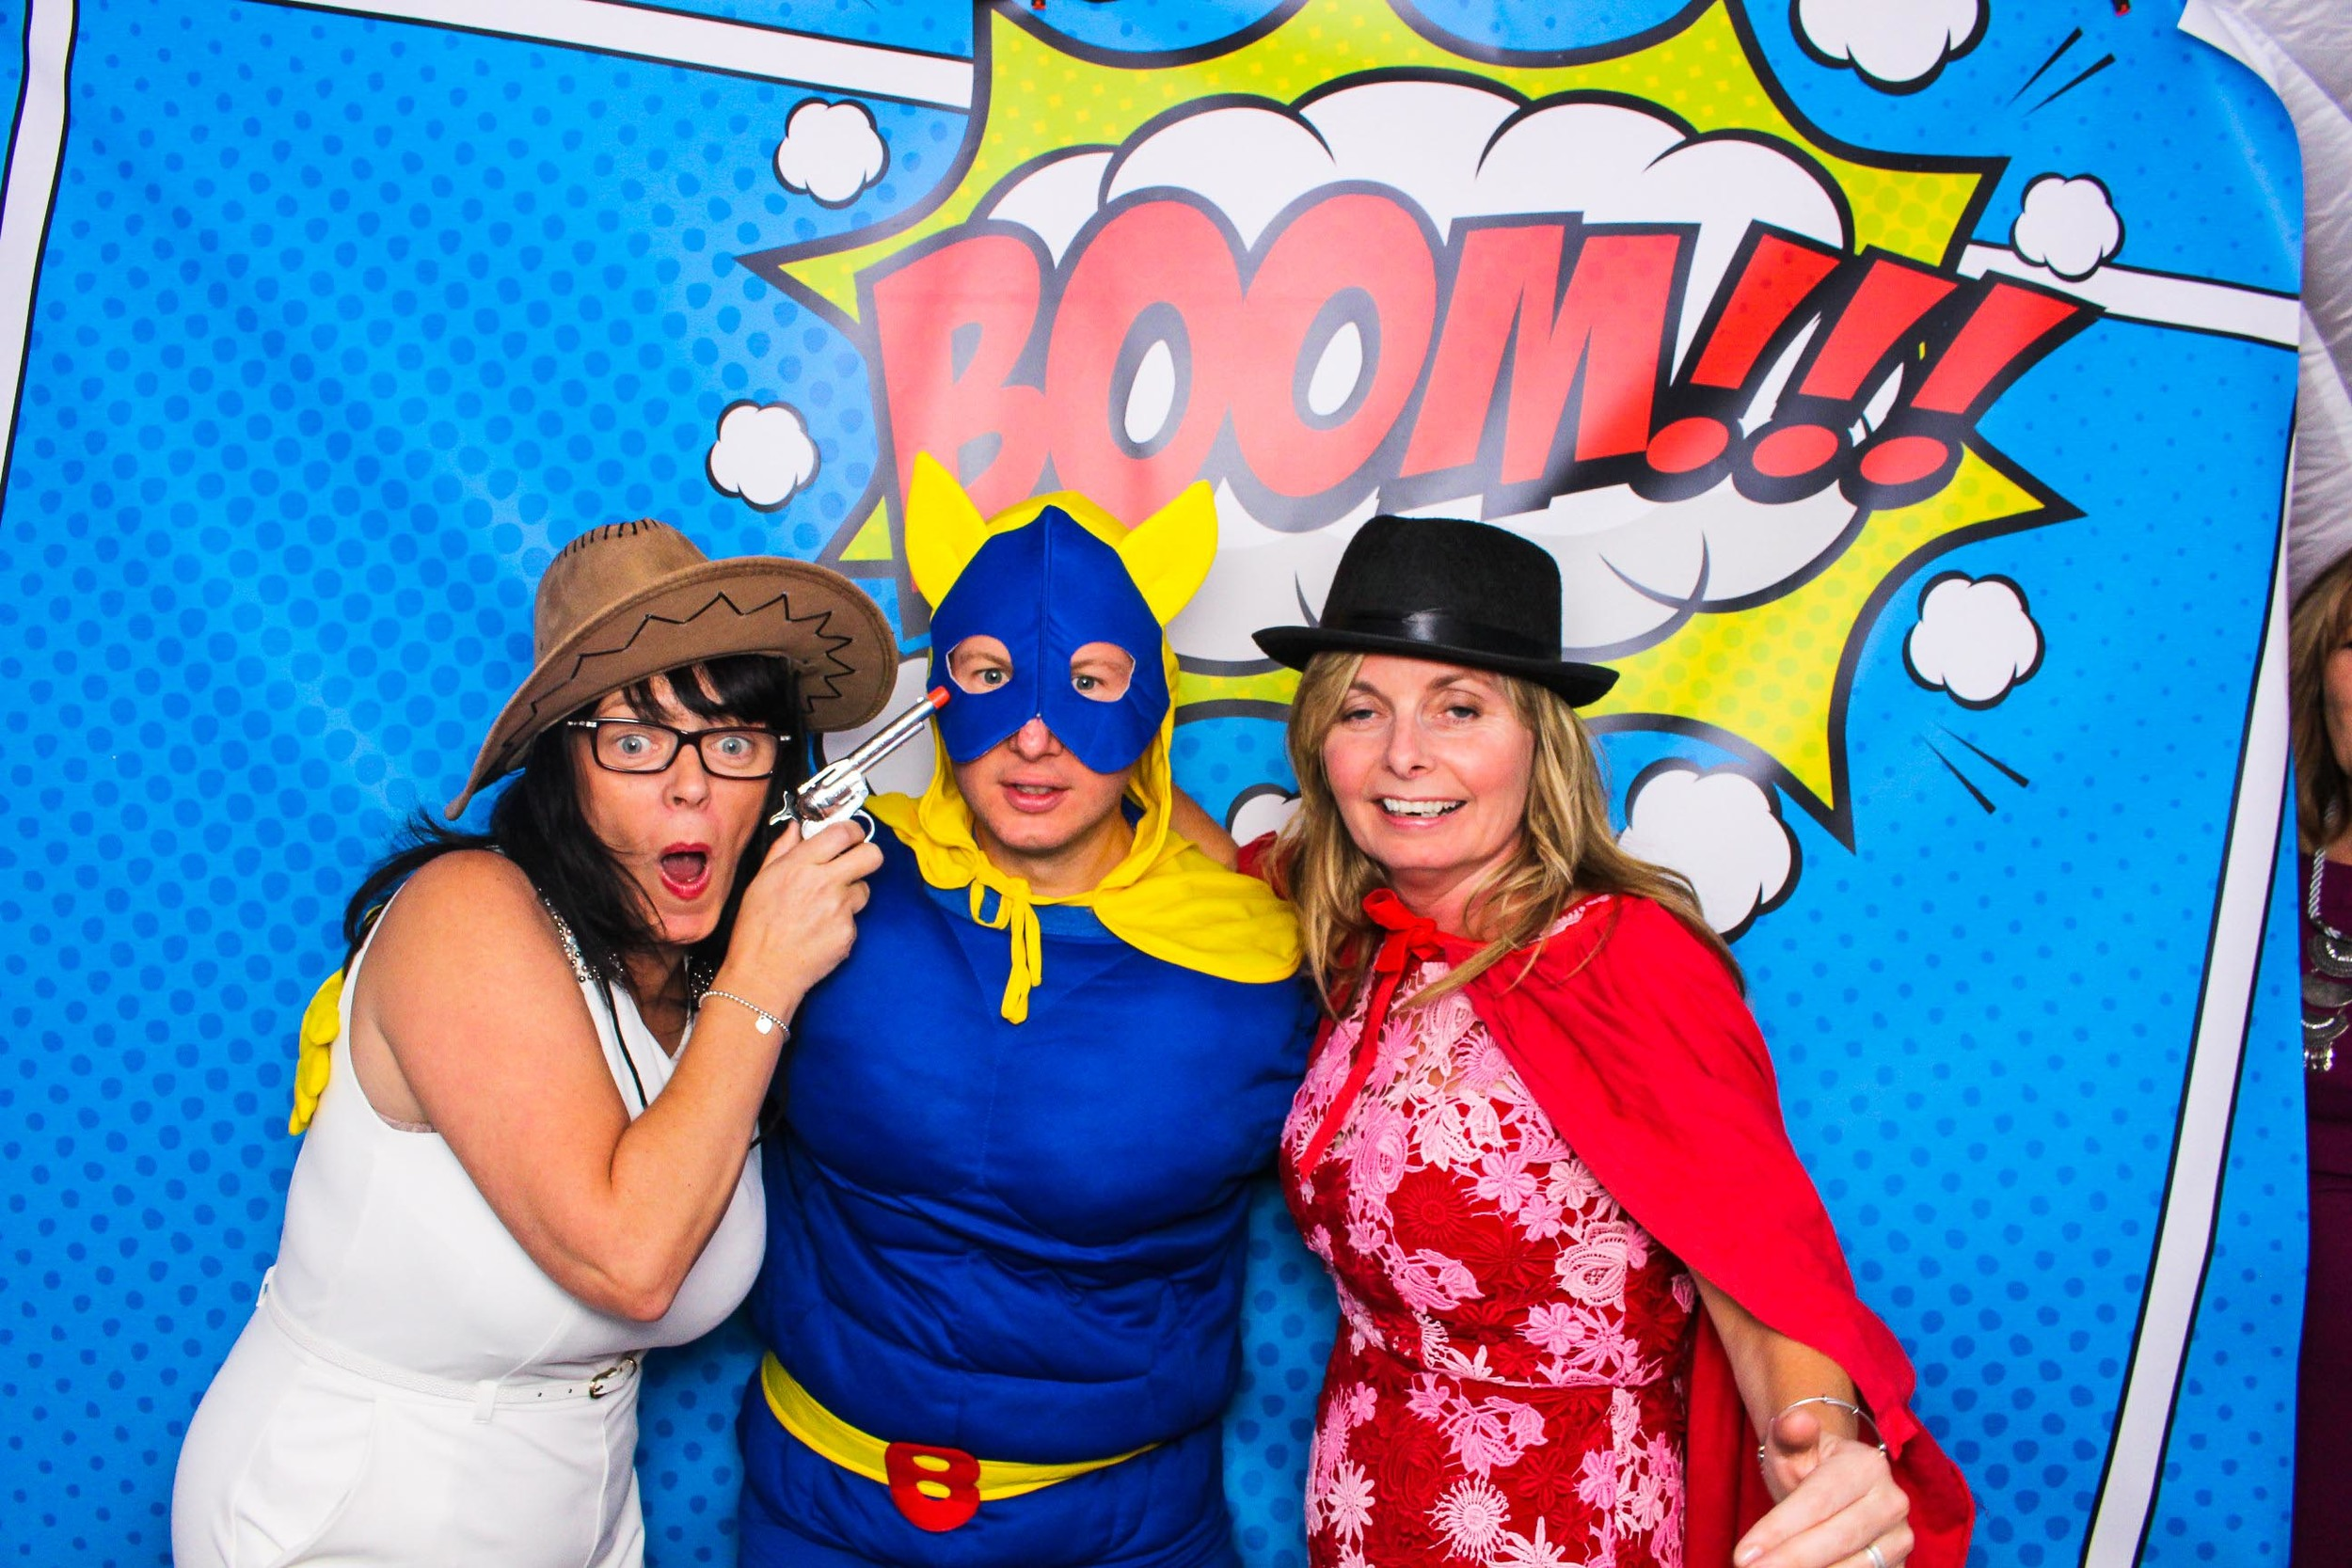 Fotoauto Photo Booth Hire - Shop Direct-49.jpg